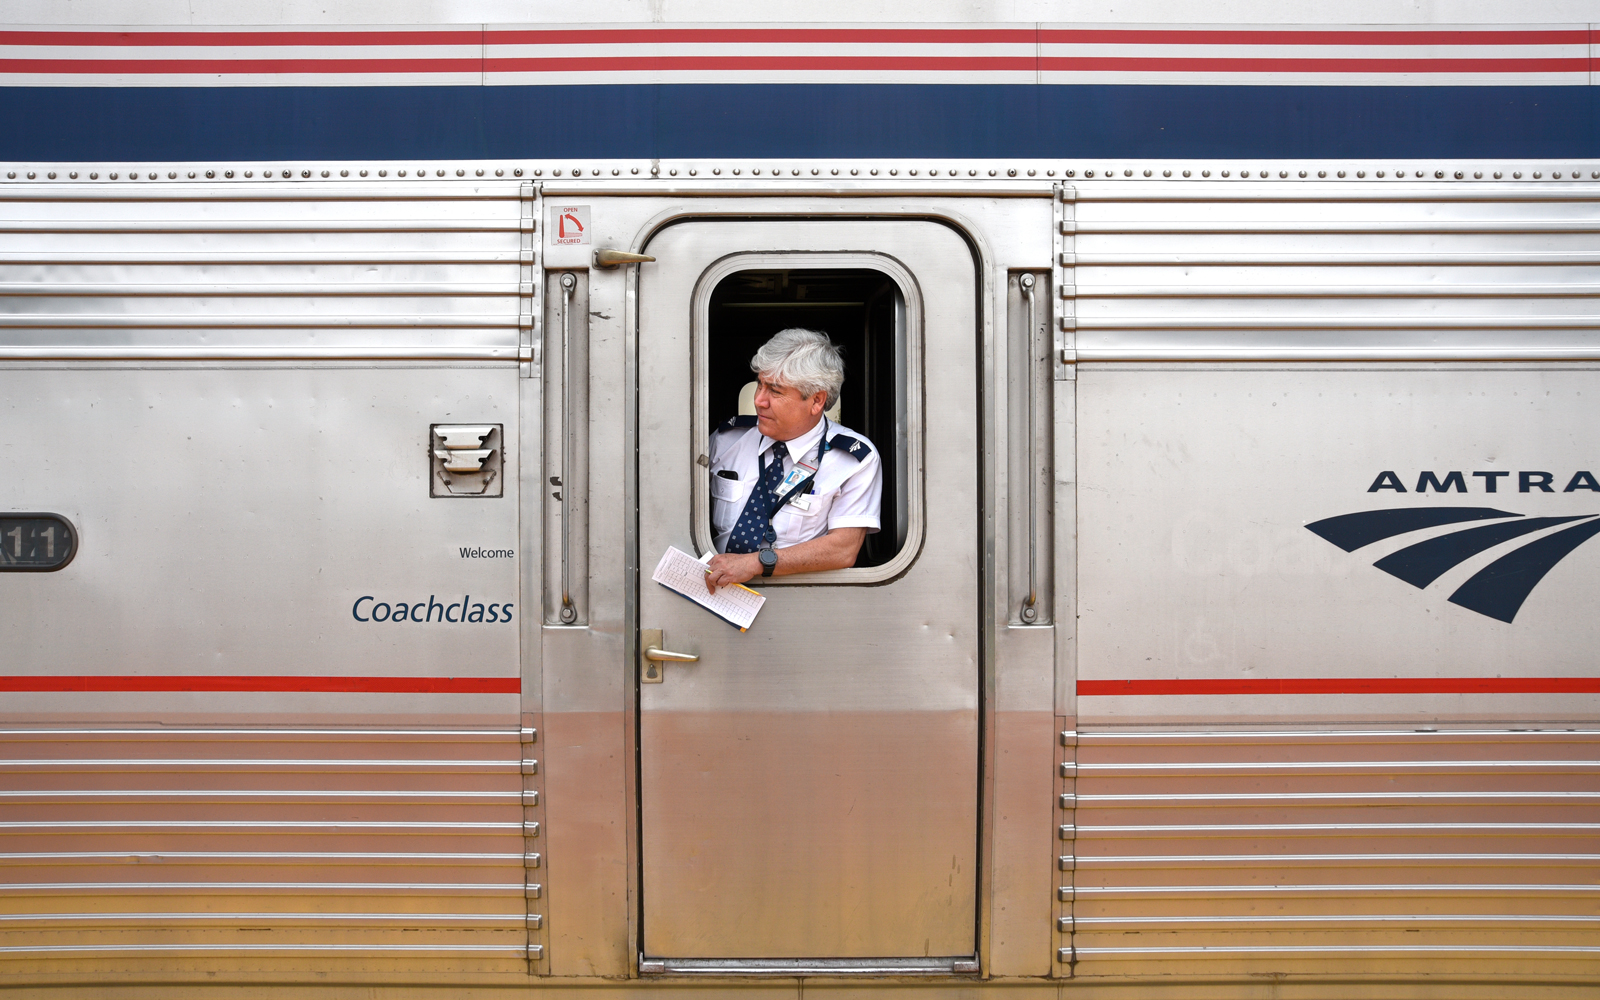 An assistant conductor on an Amtrak train